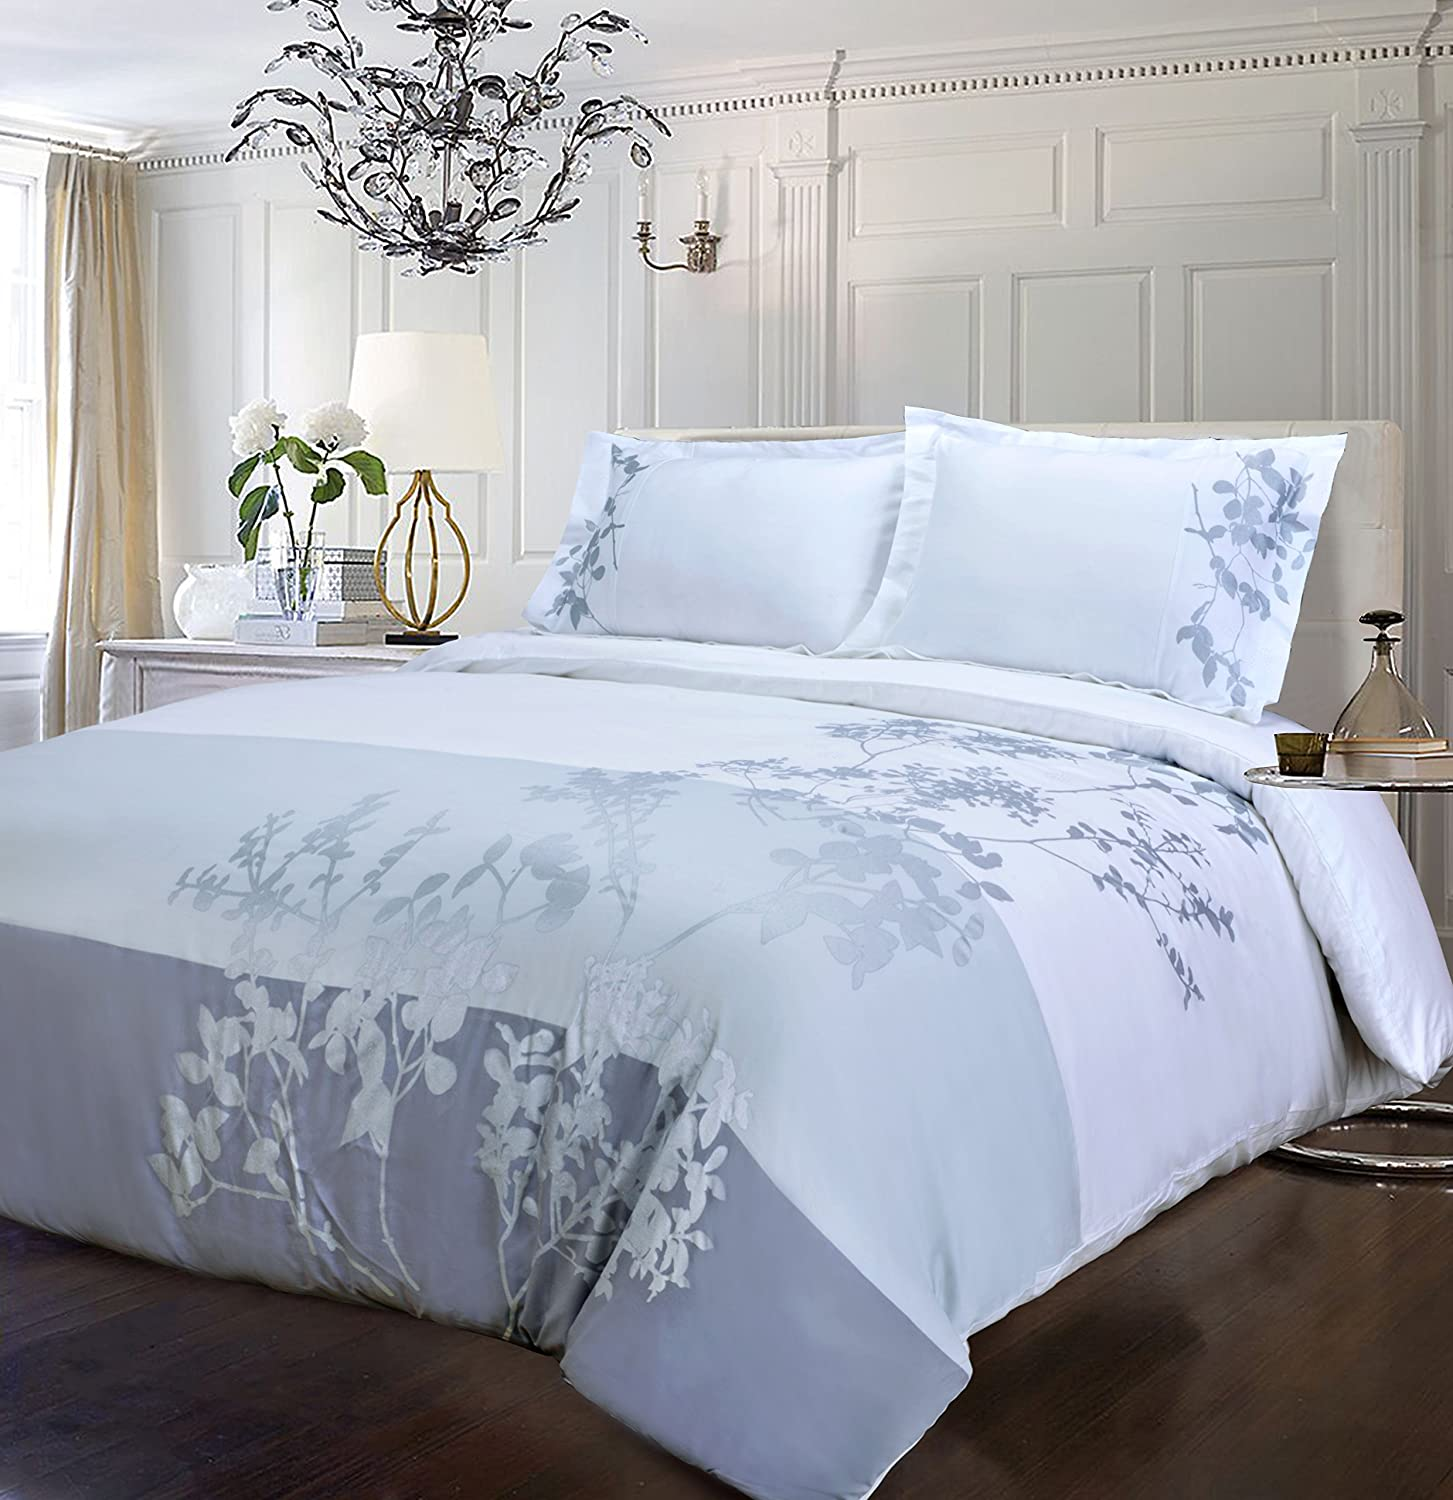 king duvet cover sets Amazon.com: Superior 100% Cotton Sydney Single Ply, Soft 3 Piece  king duvet cover sets